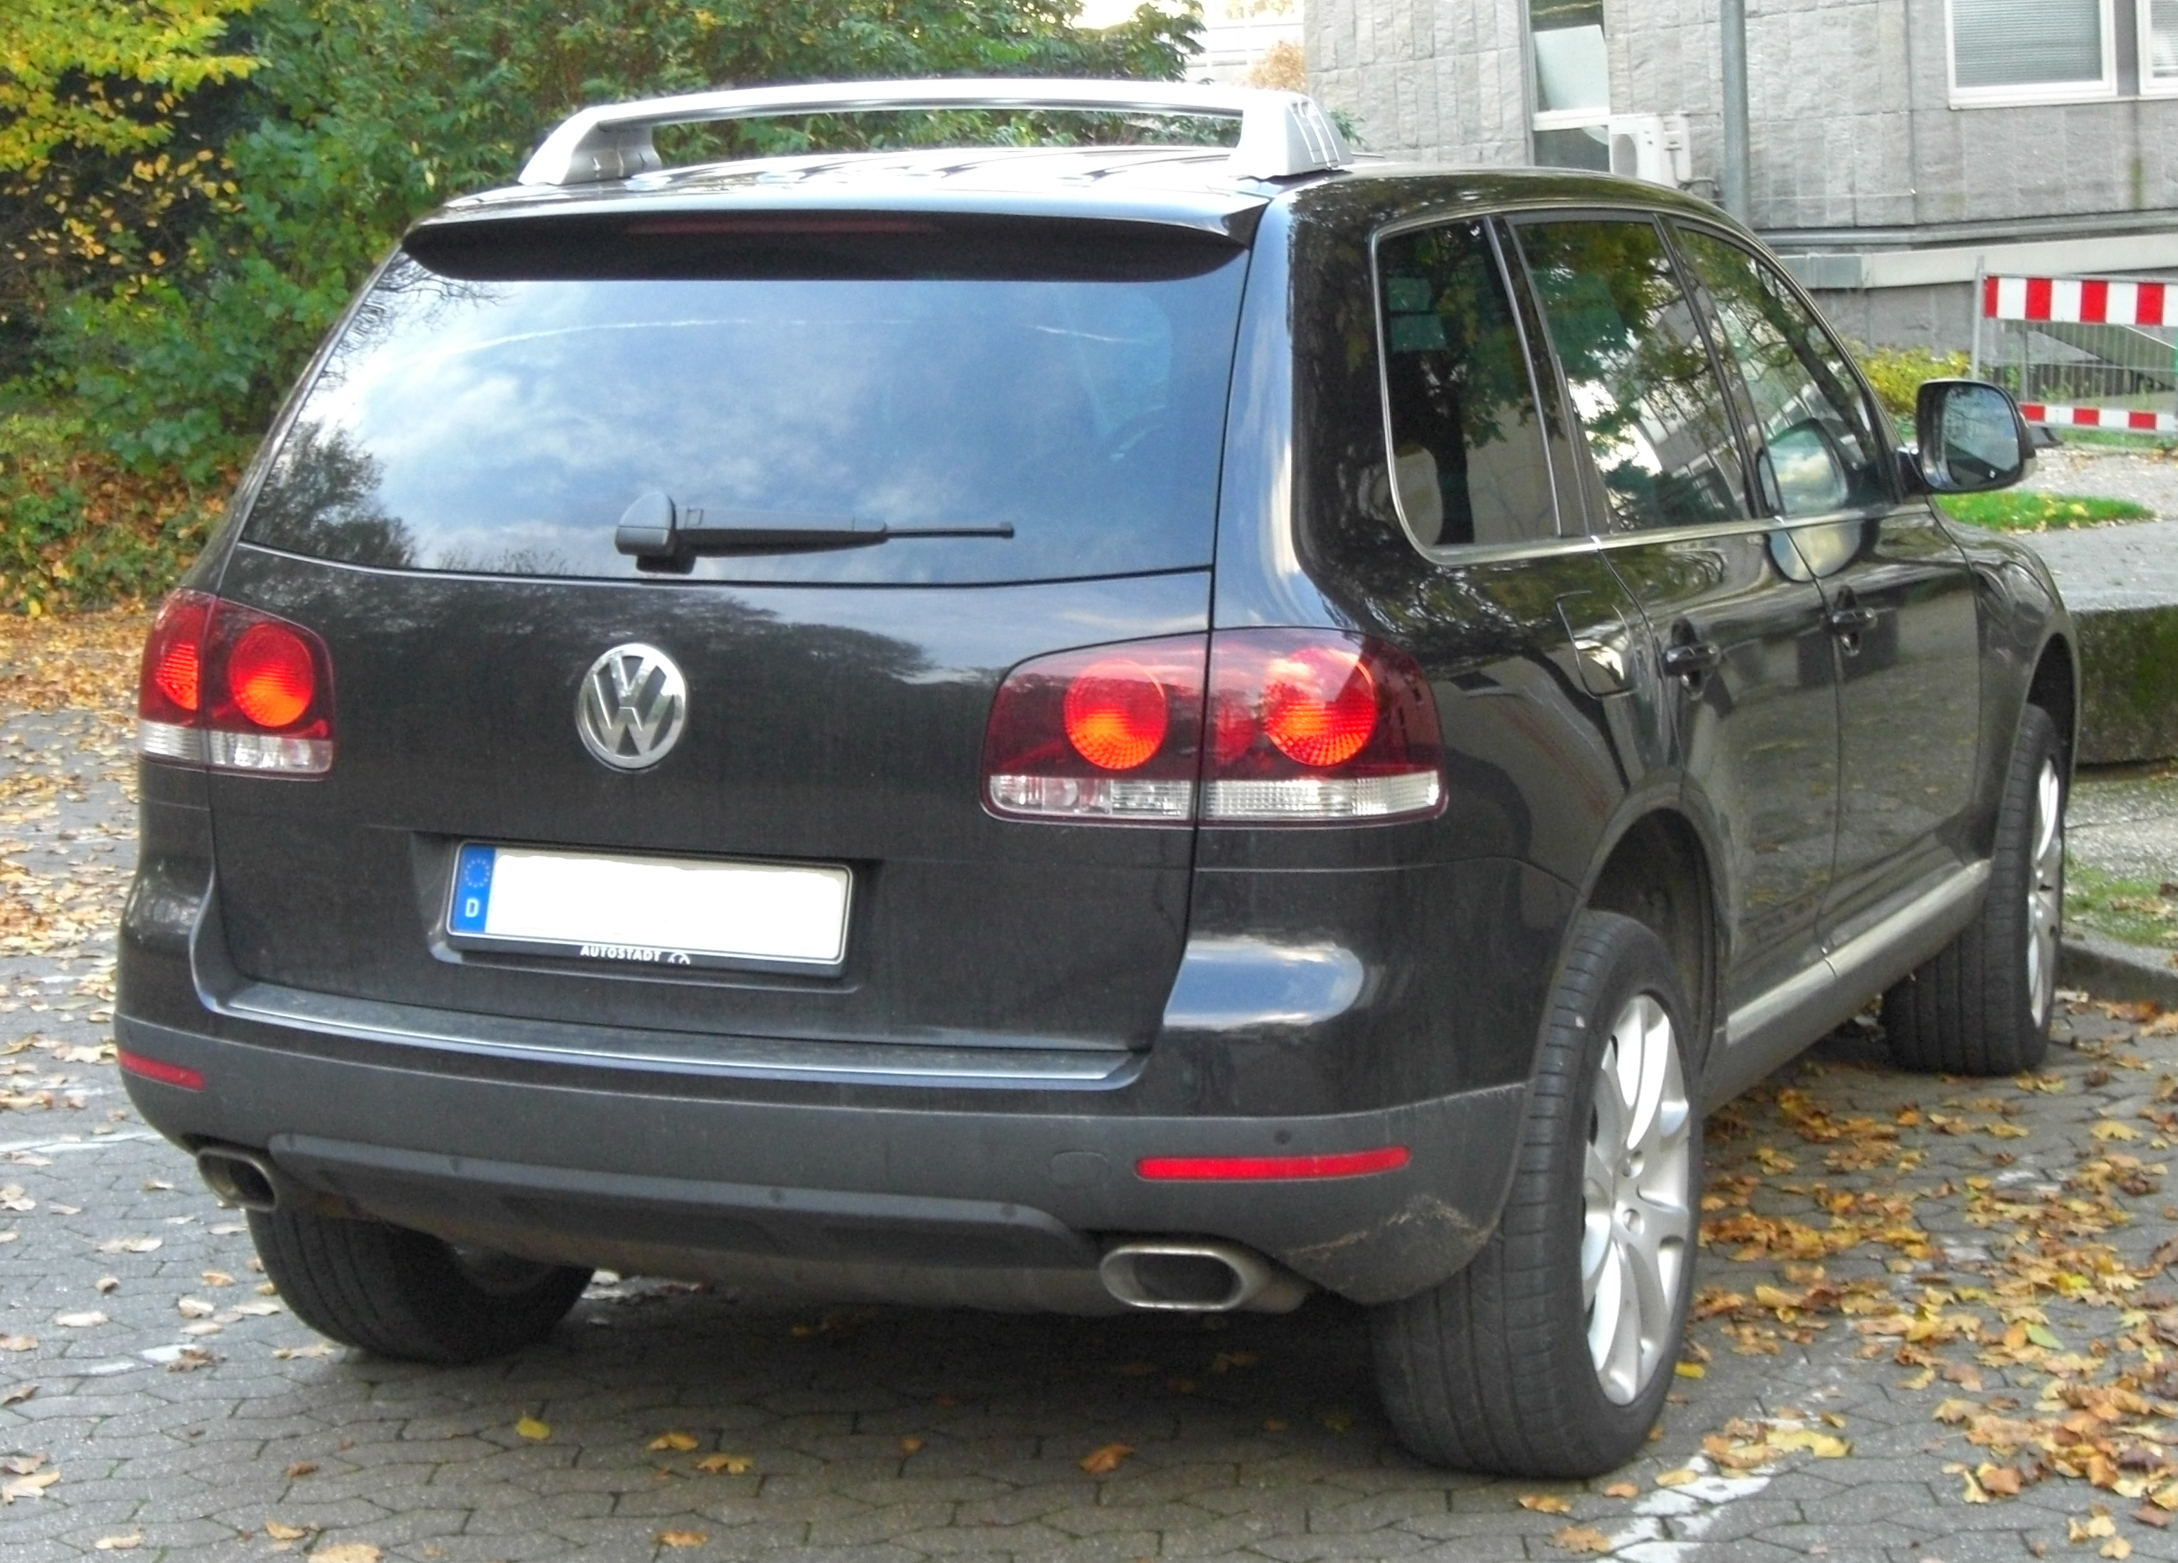 ficheiro vw touareg v10 tdi facelift seit 2007 rear mj jpg wikipedia a enciclopedia libre. Black Bedroom Furniture Sets. Home Design Ideas